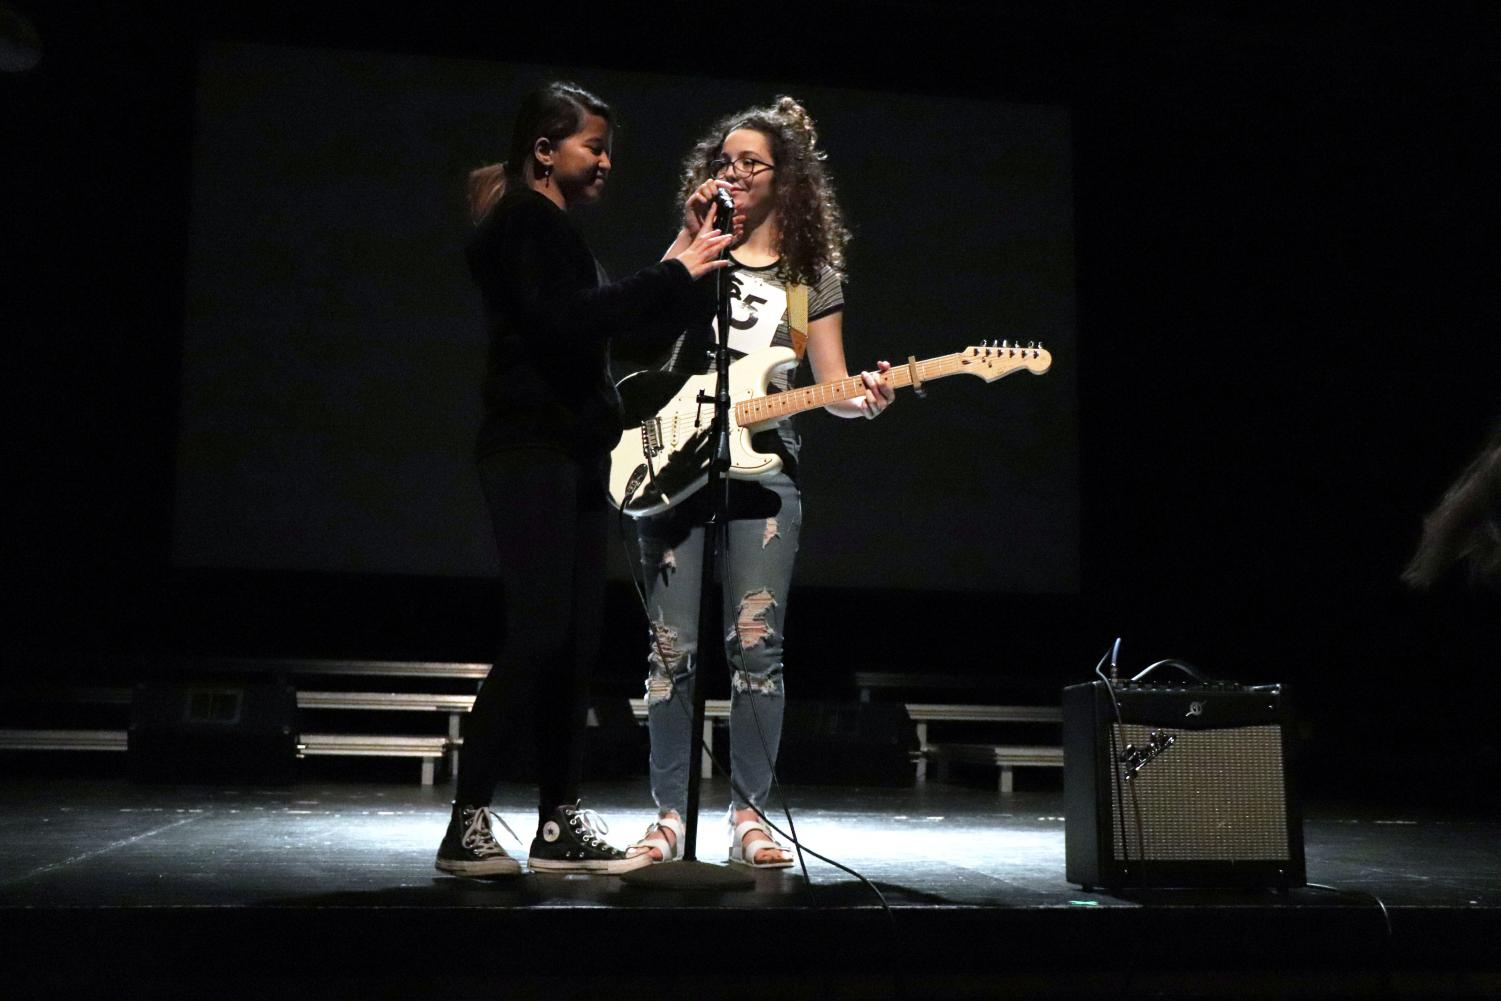 Mr/Mrs Fenton contest goes to the next act as the stage-crew sets up the stage. Senior Mackenzie Cassar (contestant 5) sang Make you feel my love by Bob Dylan and commemorated the performance to her parents' 19th anniversary.